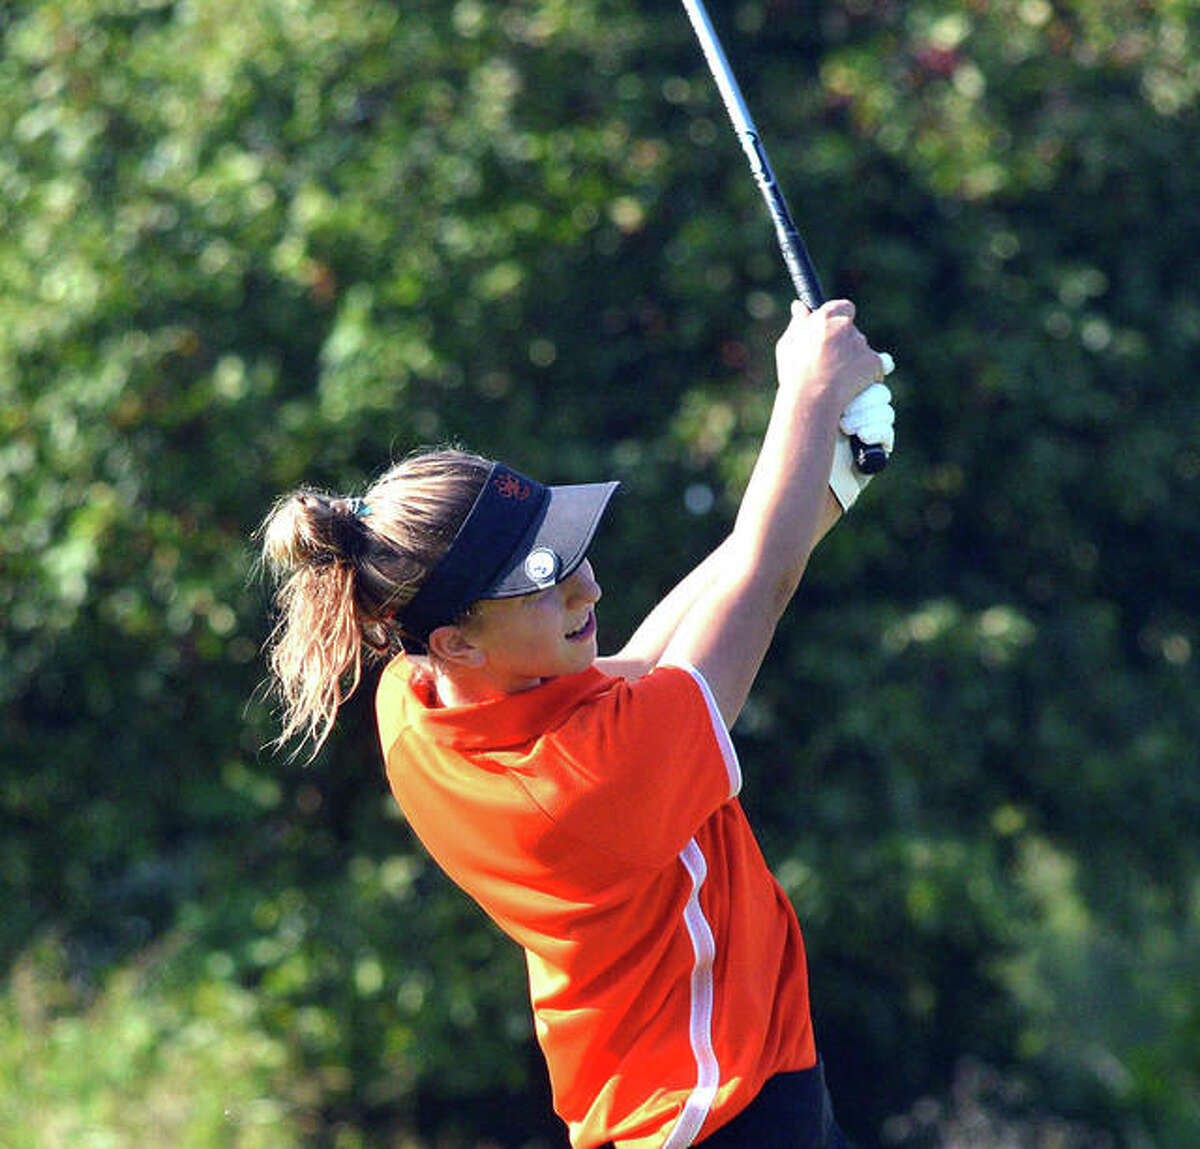 Edwardsville's Grace Daech hits a tee shot on No. 7 at Spencer T. Olin Golf Course during Wednesday's triangular match against Marquette and Triad.